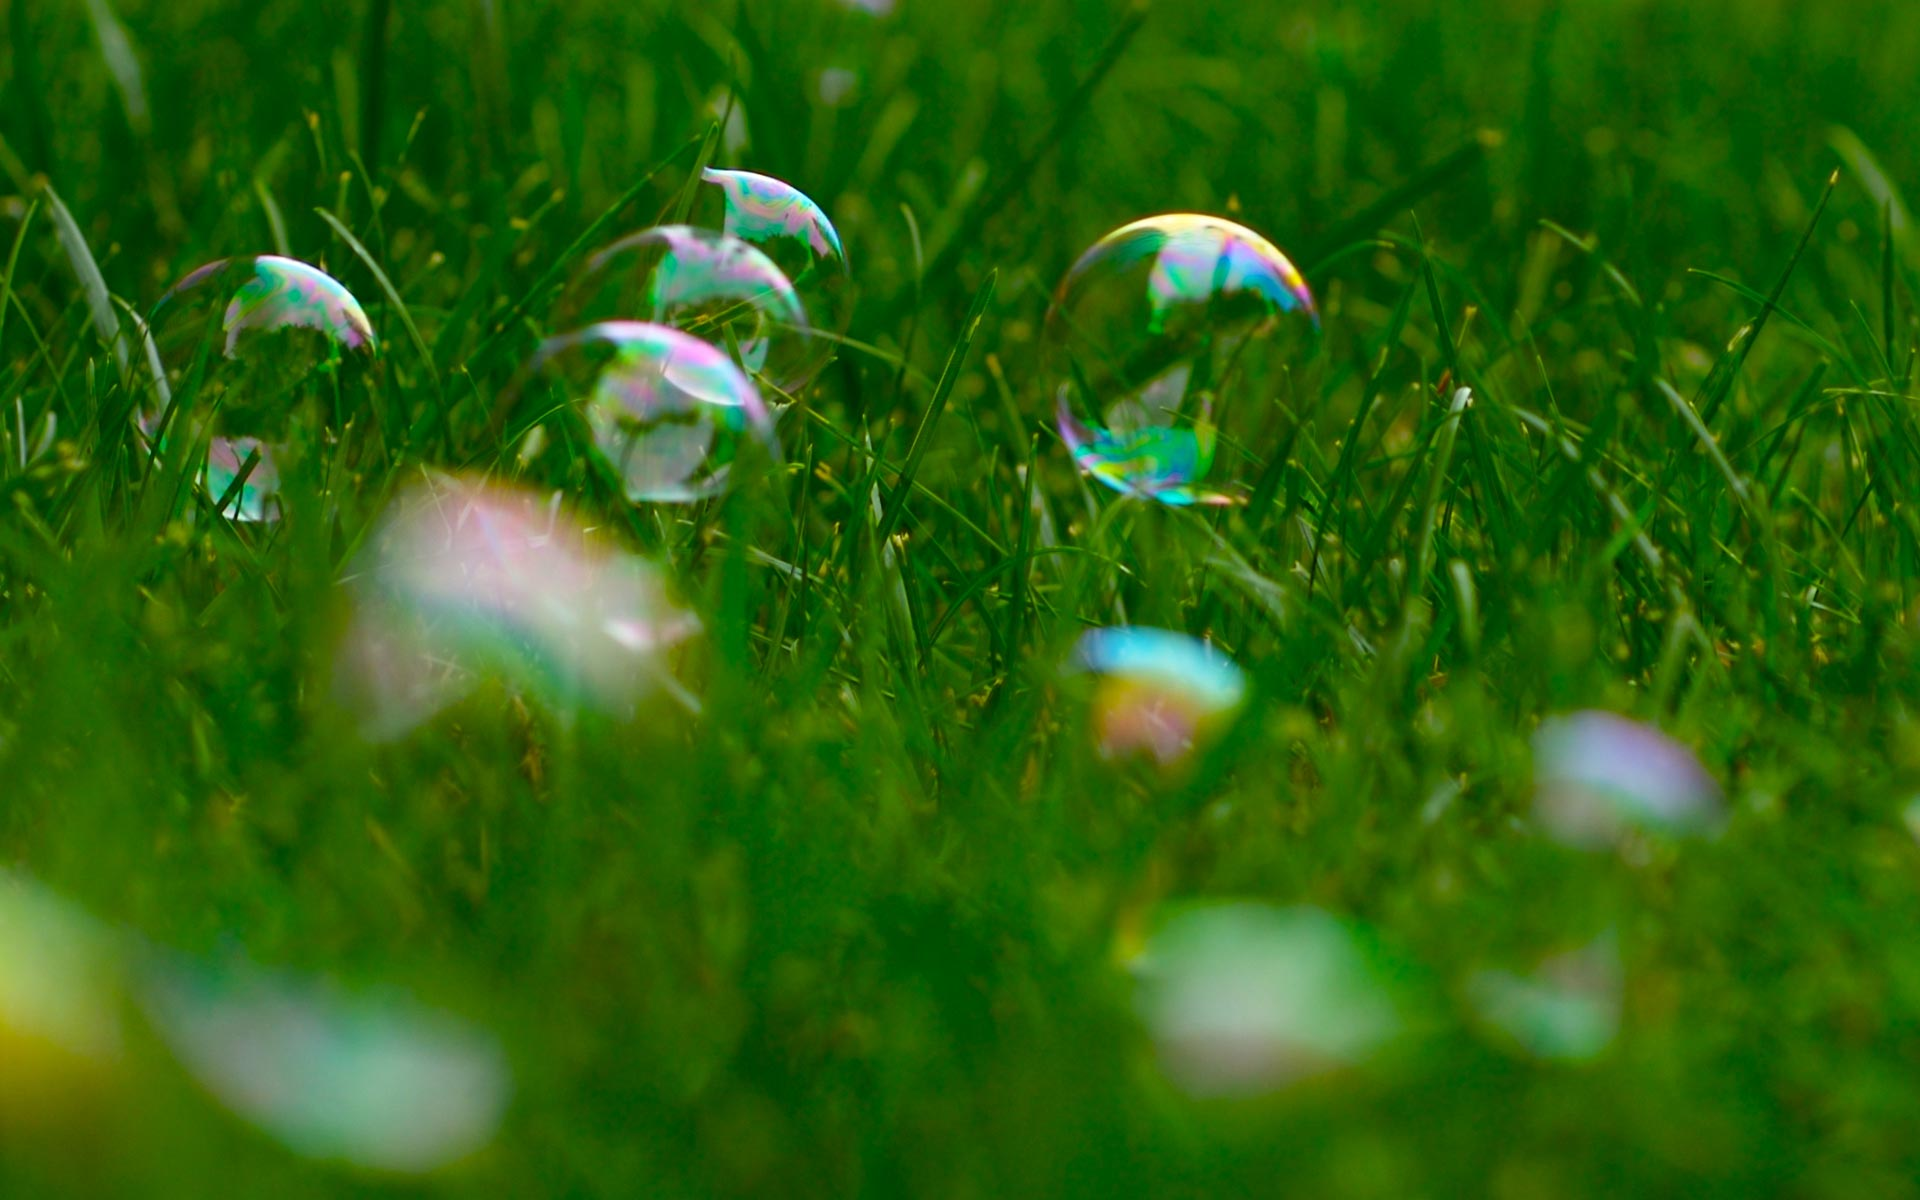 Bubbles Grass Wallpapers High Quality | Download Free